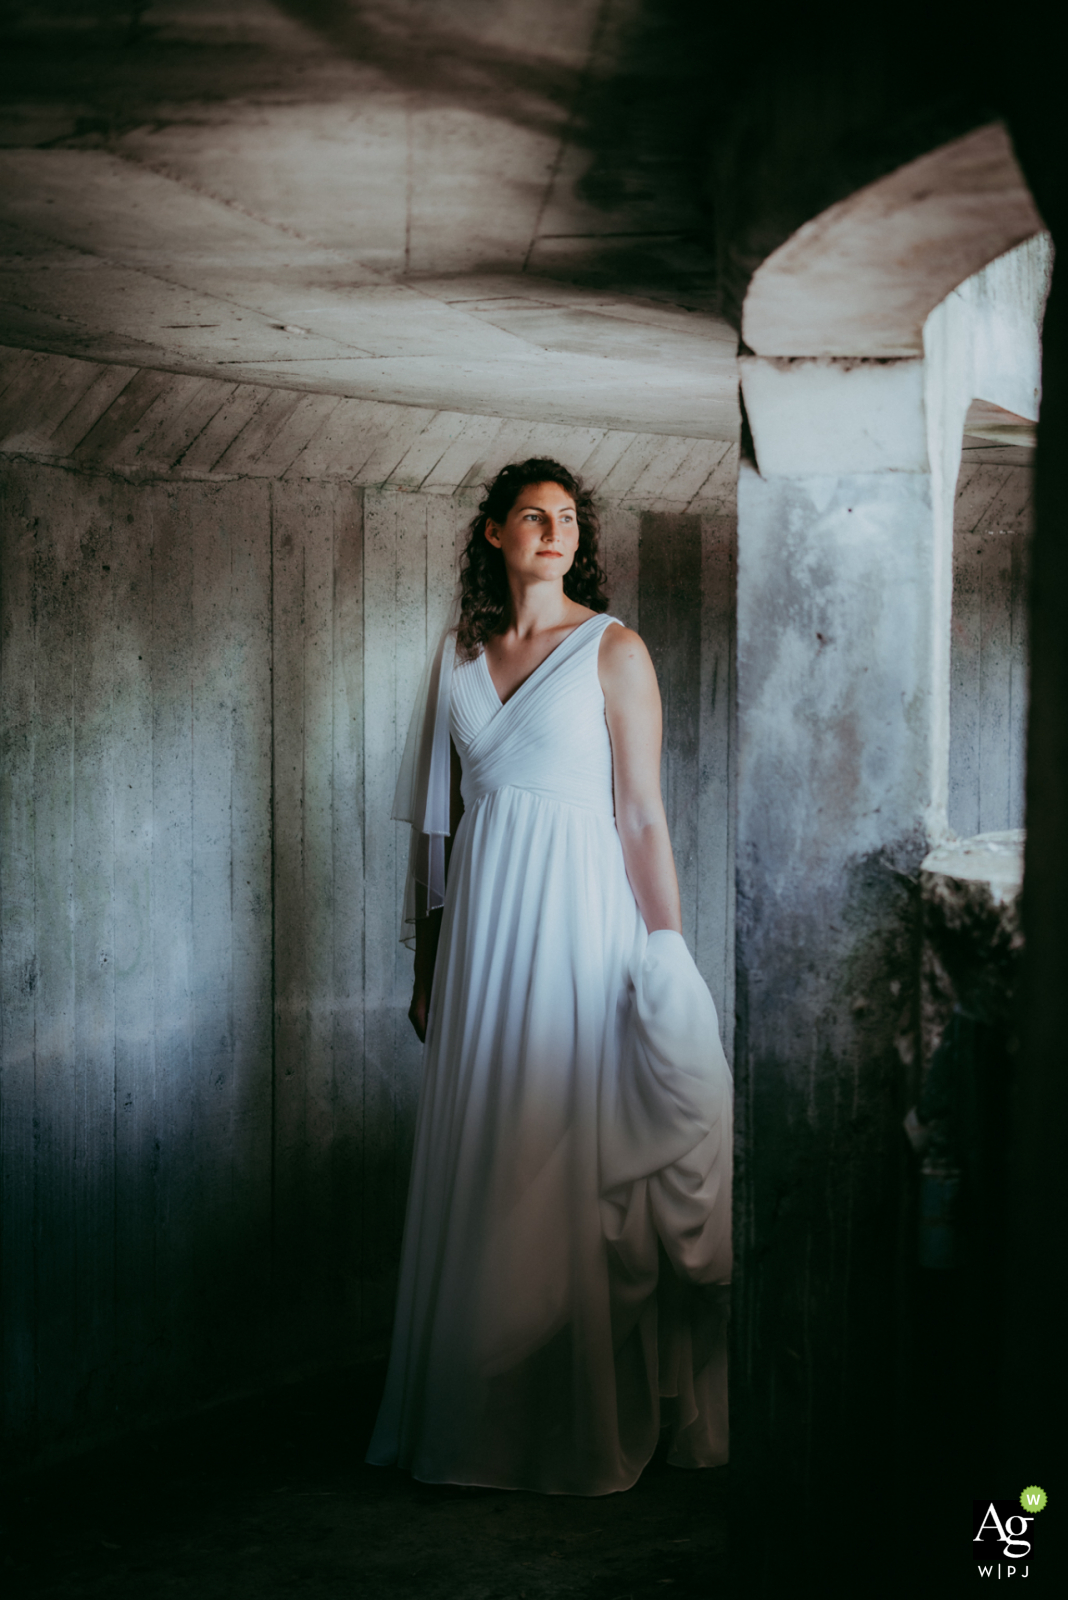 Shaanxi artistic wedding couple portrait created as the Bride poses in an old army shelter